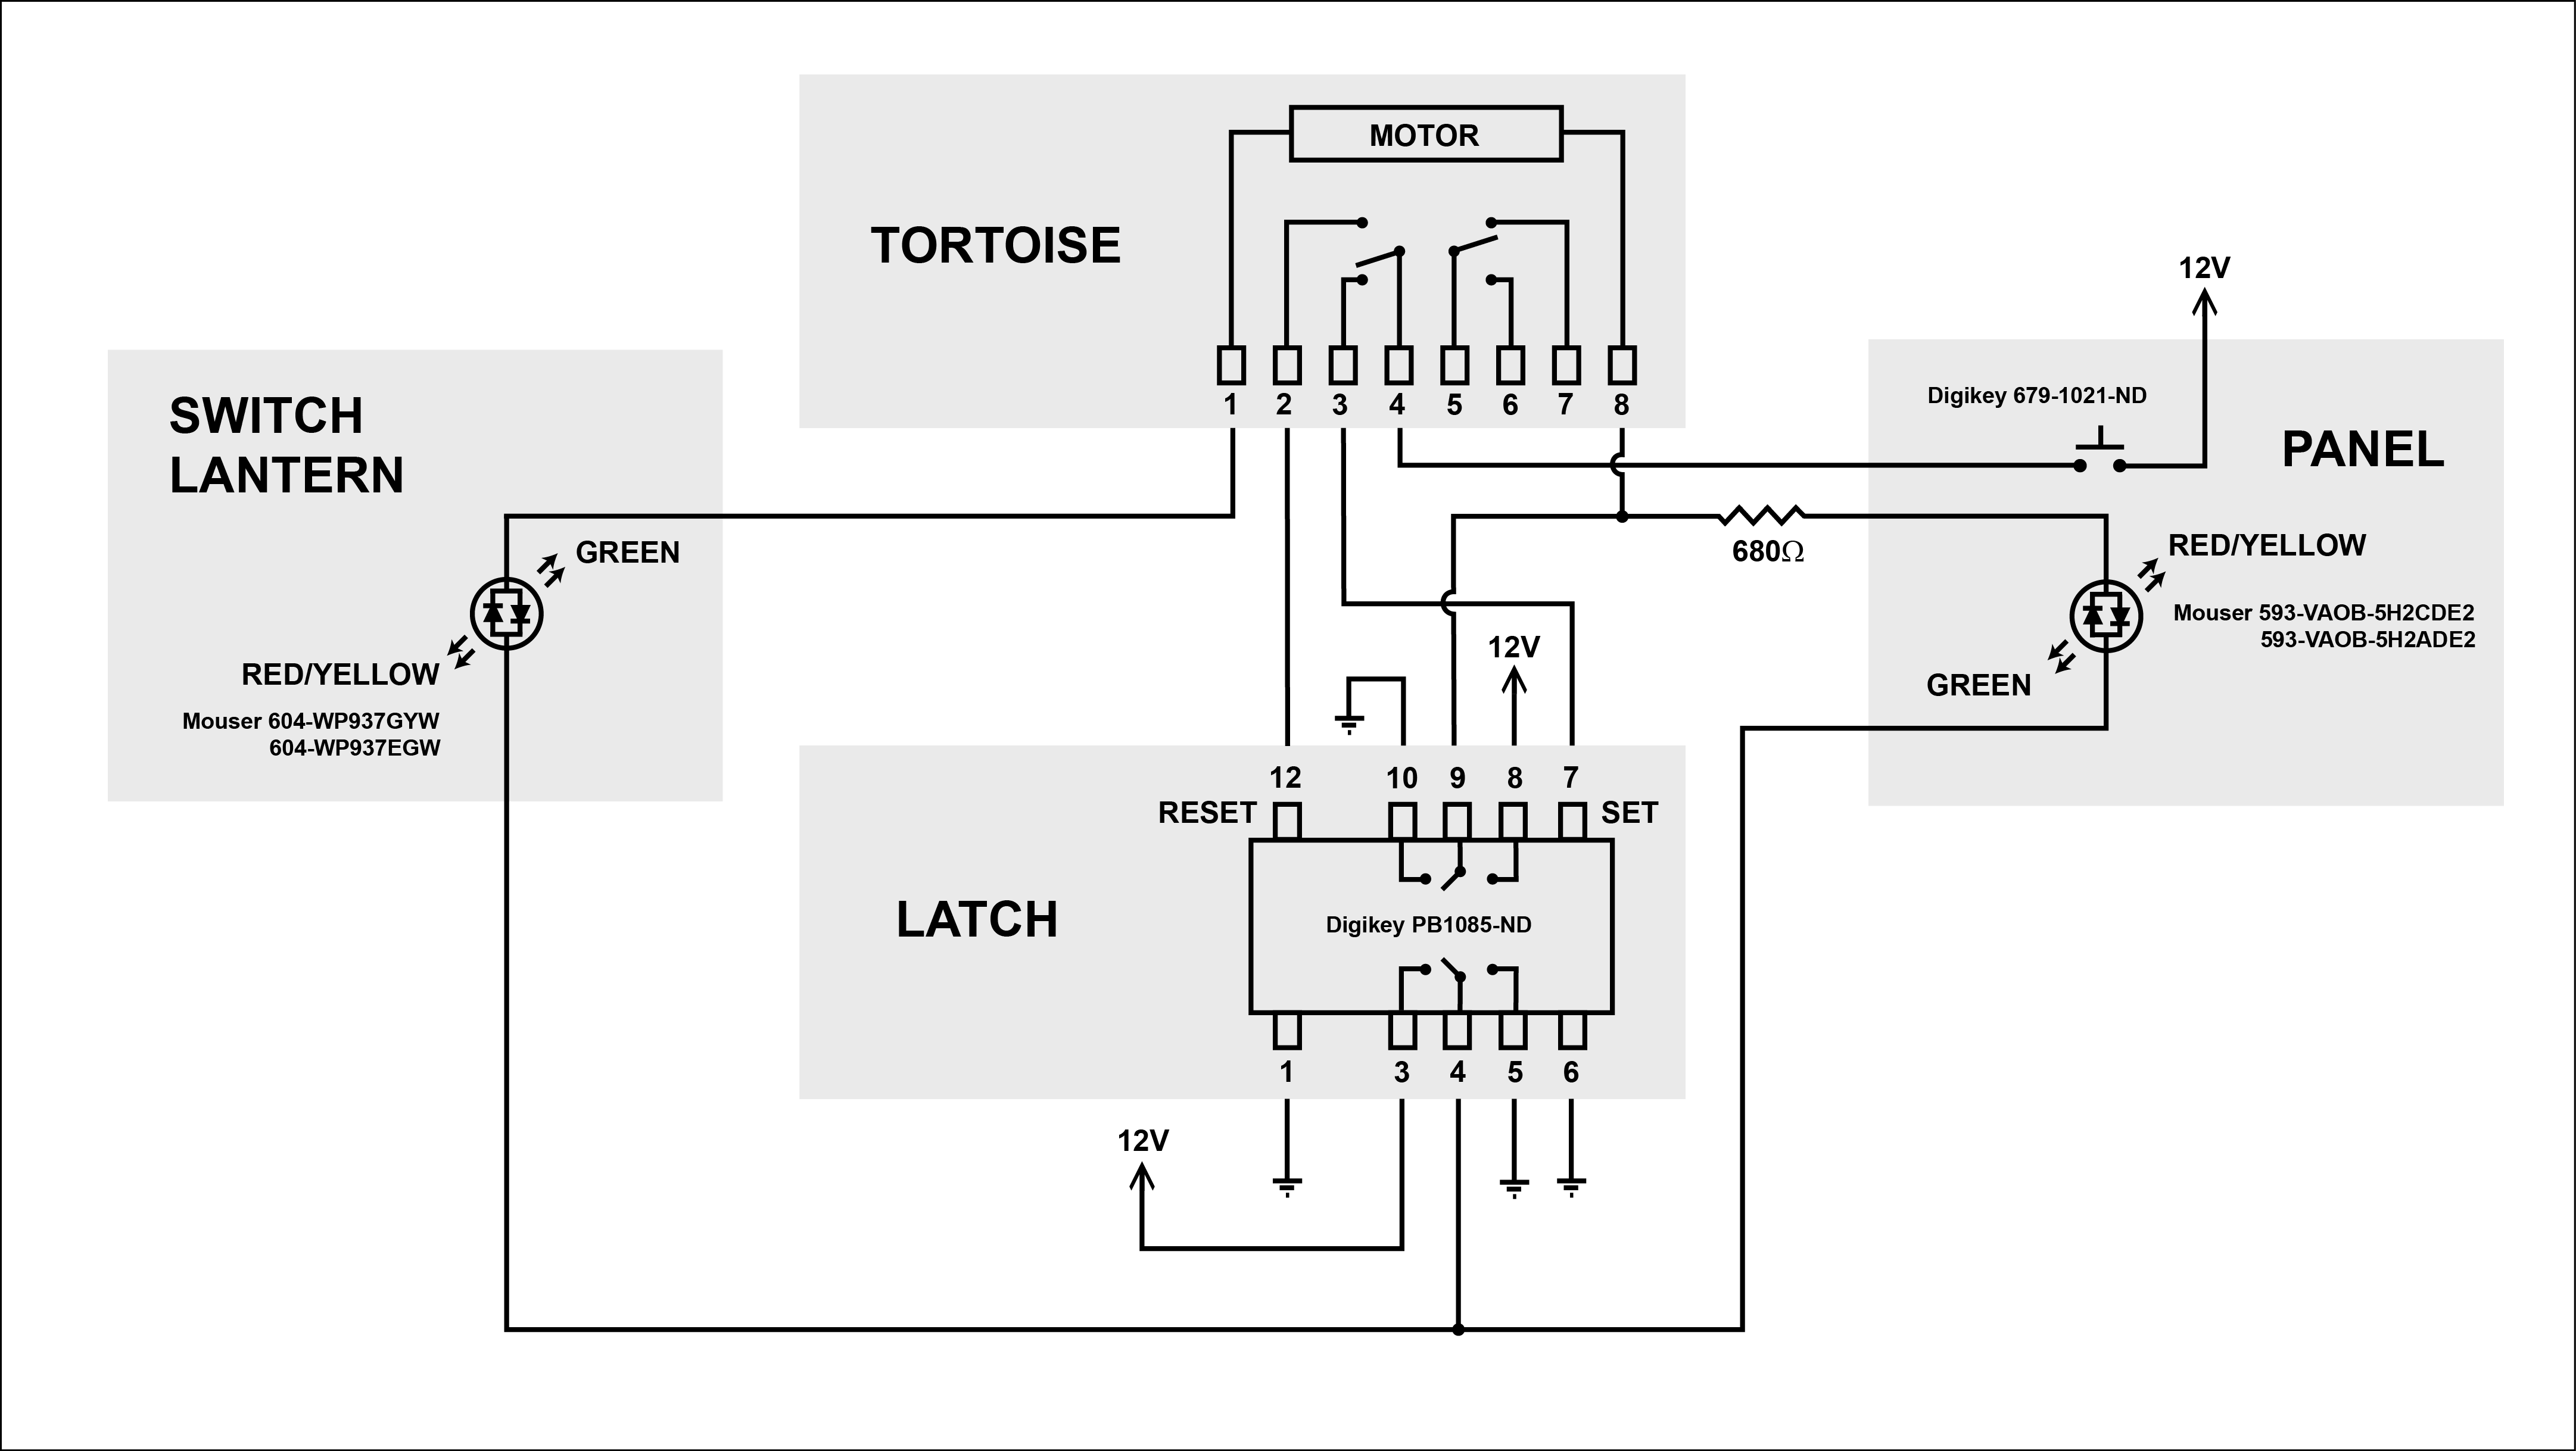 Tortoise Wiring Led Switch 8 Diagrams Dcc Machine Diagram Machines With Get Free Signals